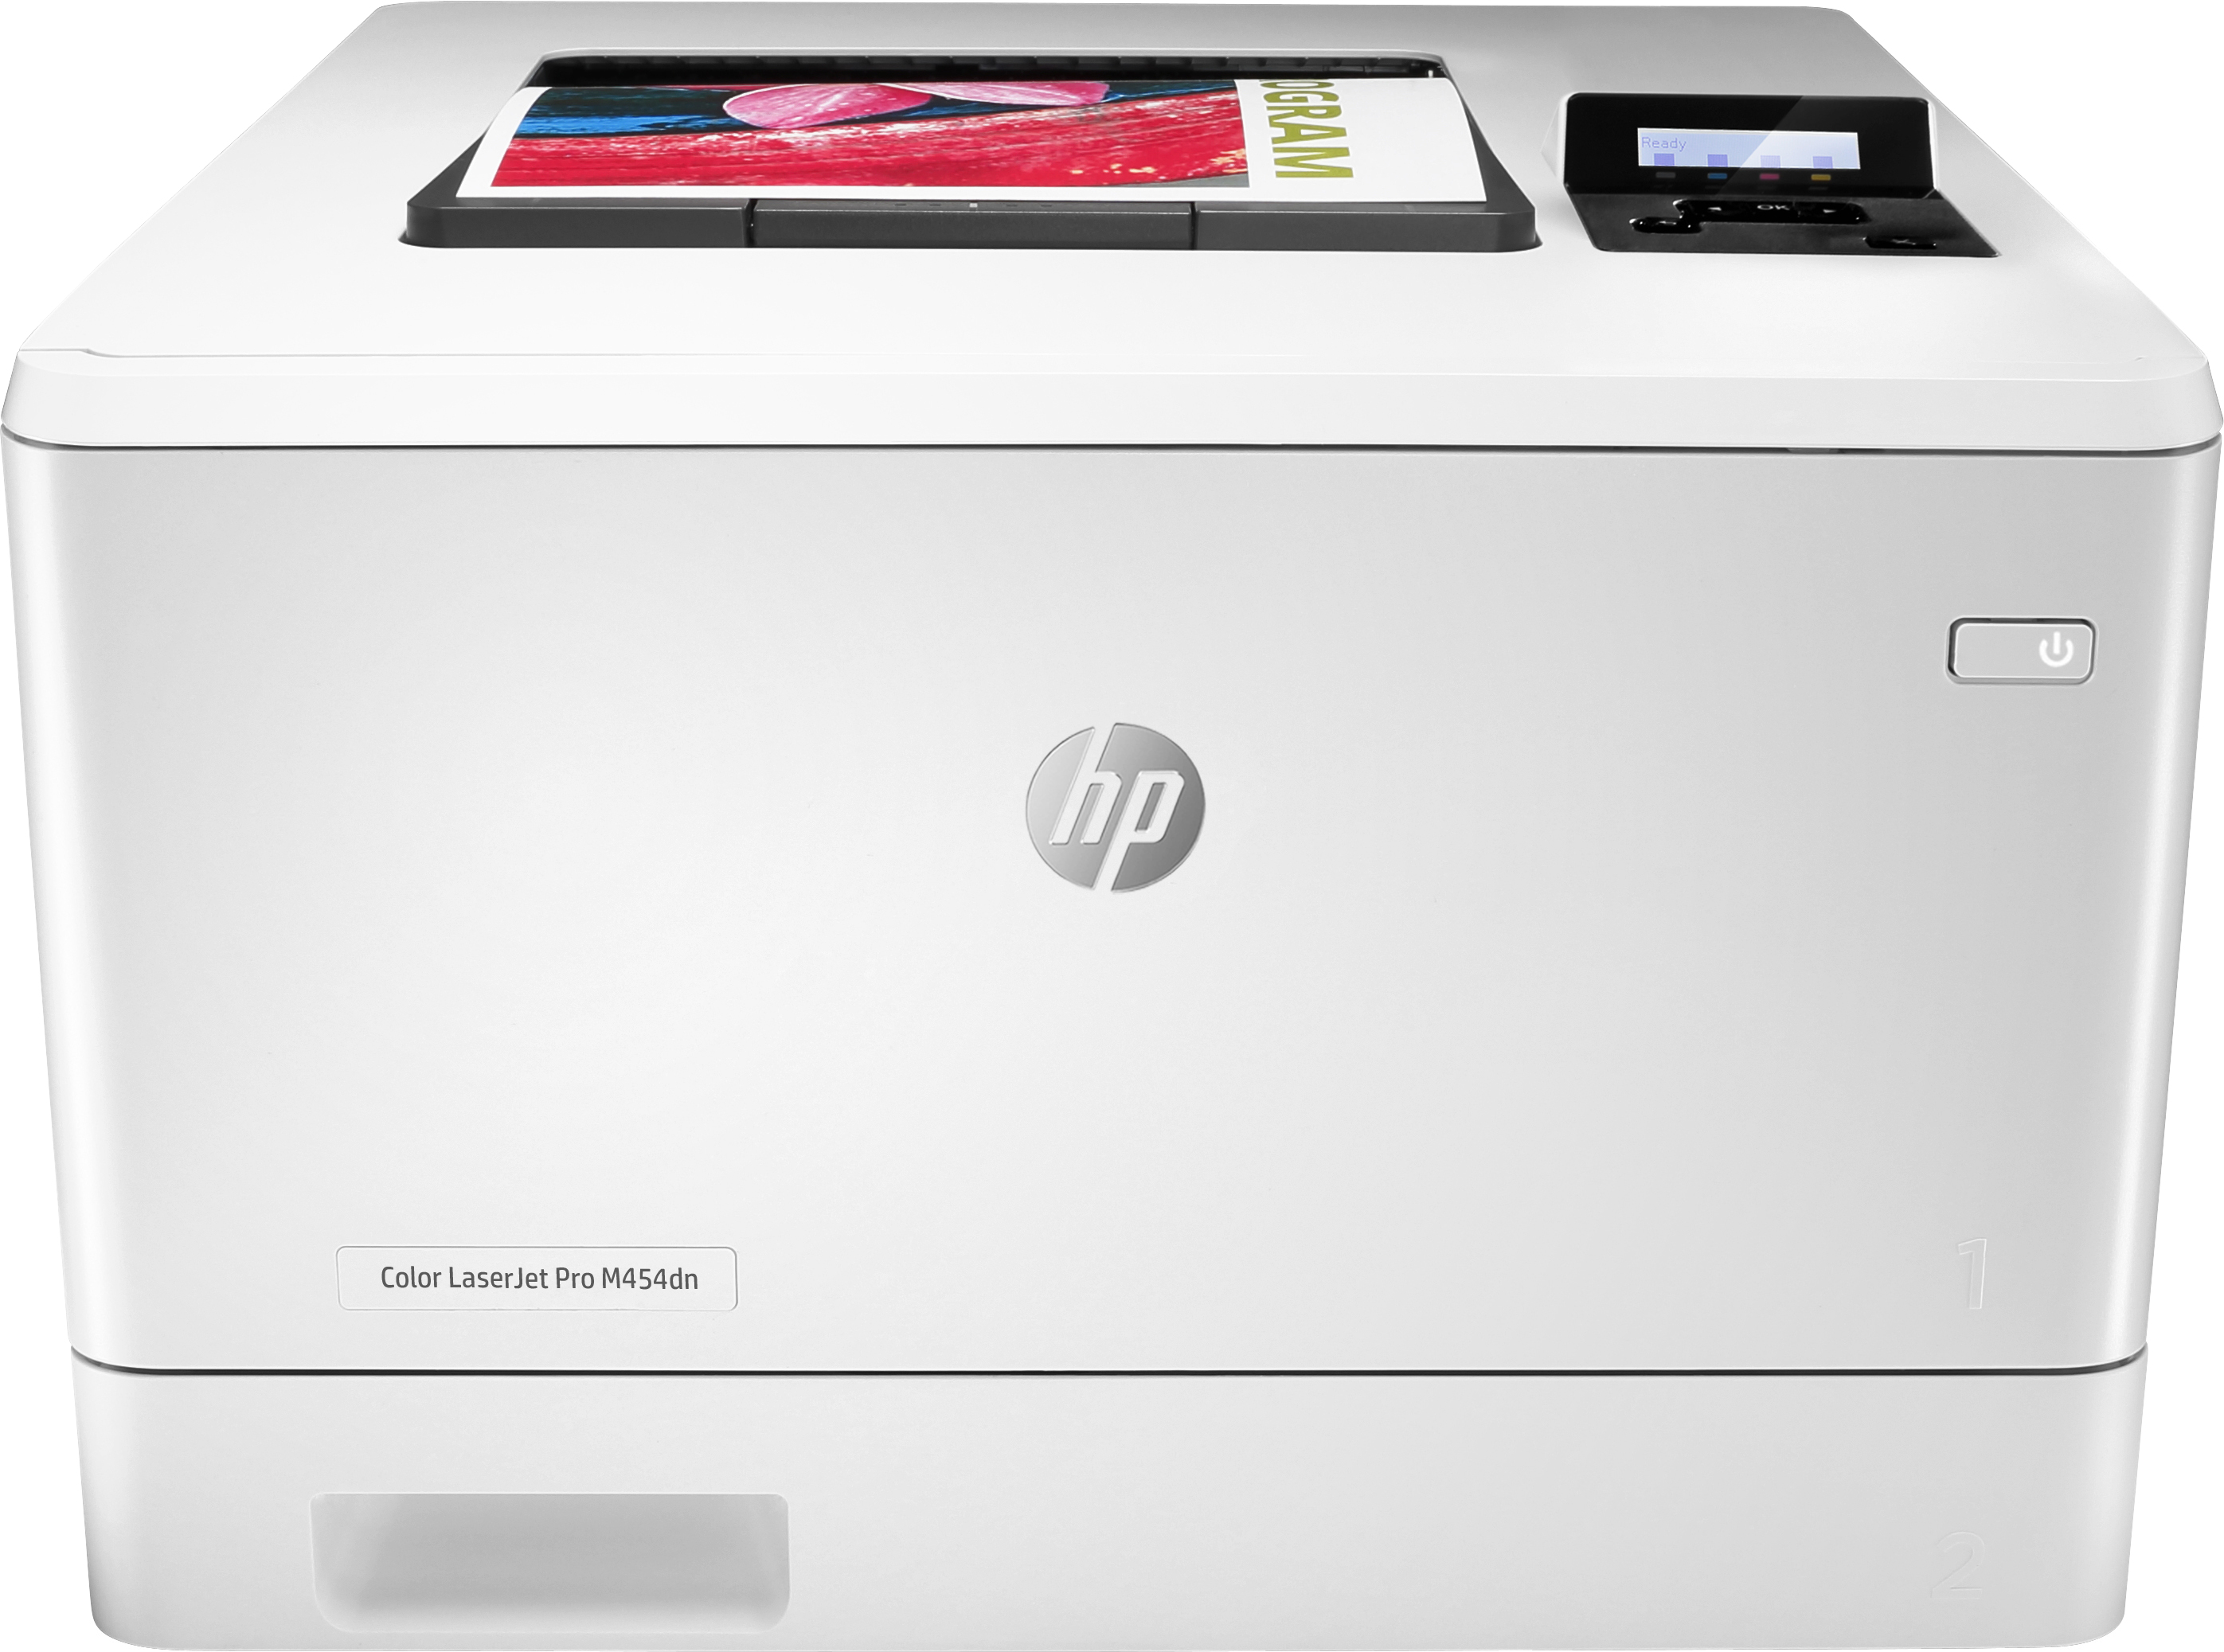 HP Color LaserJet Pro M454dn - Drucker - Laser/LED-Druck